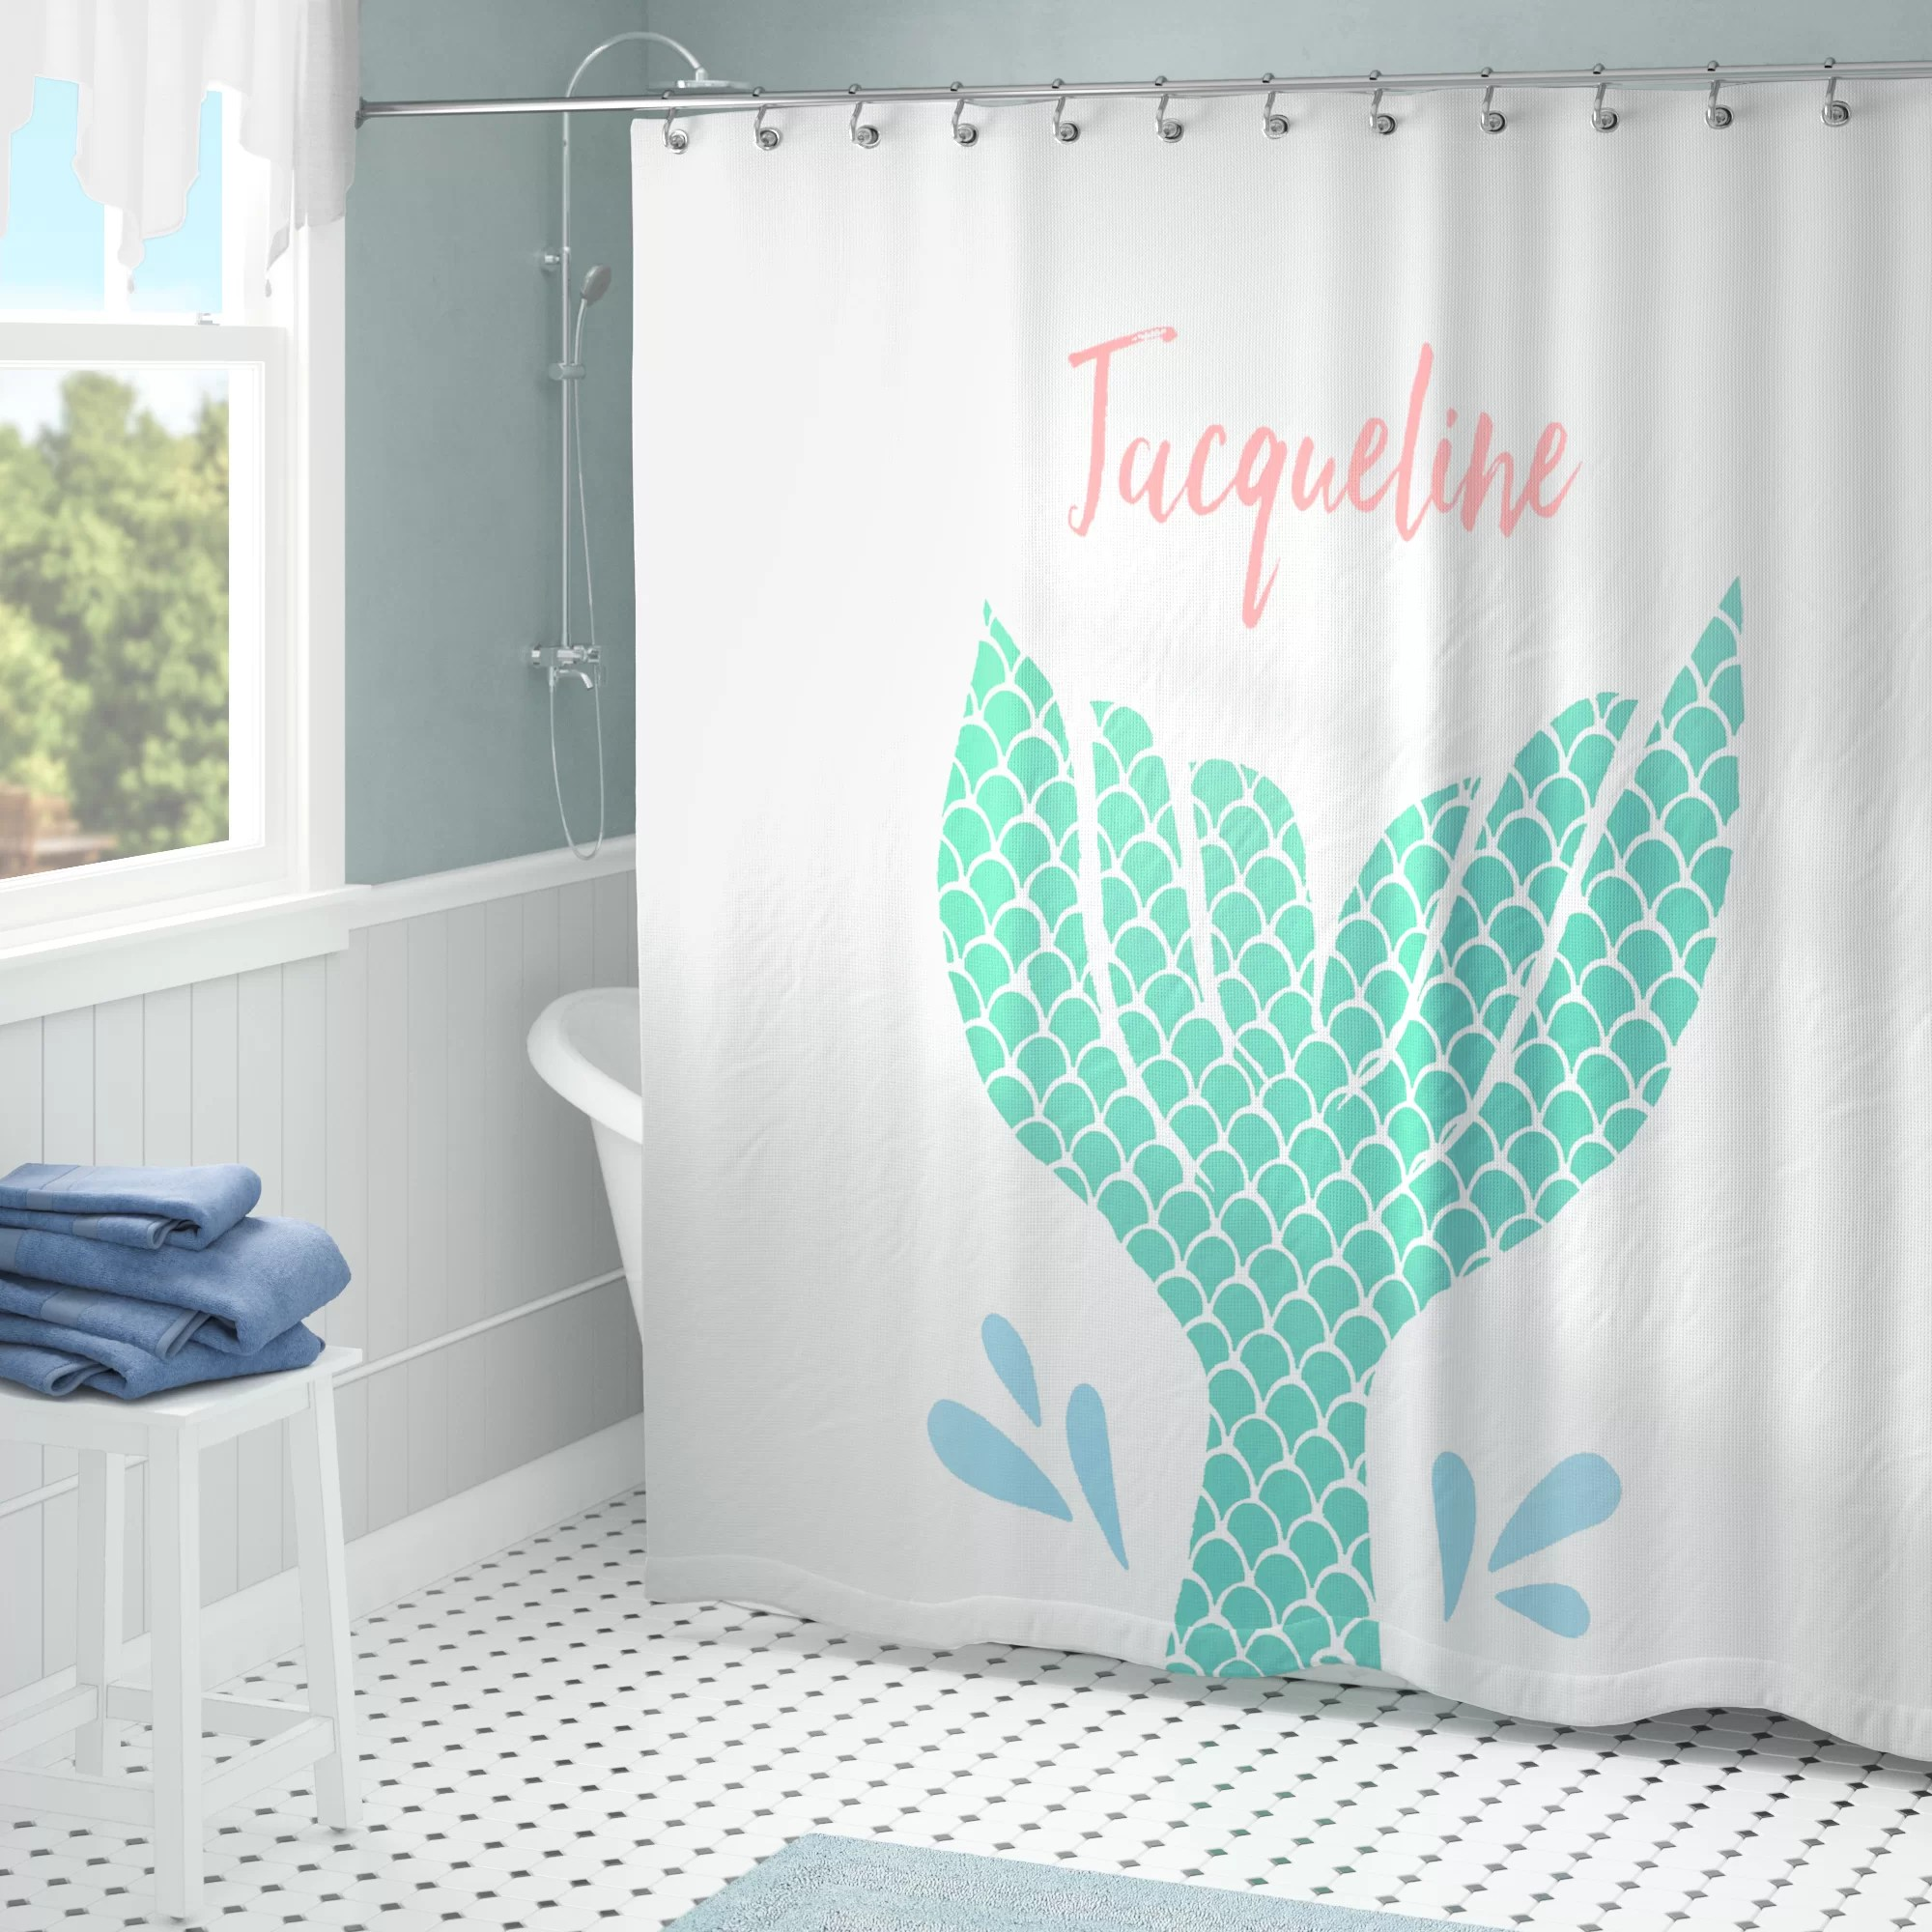 Mermaid Scale Shower Curtain Jena Personalized Mermaid Tail Single Shower Curtain